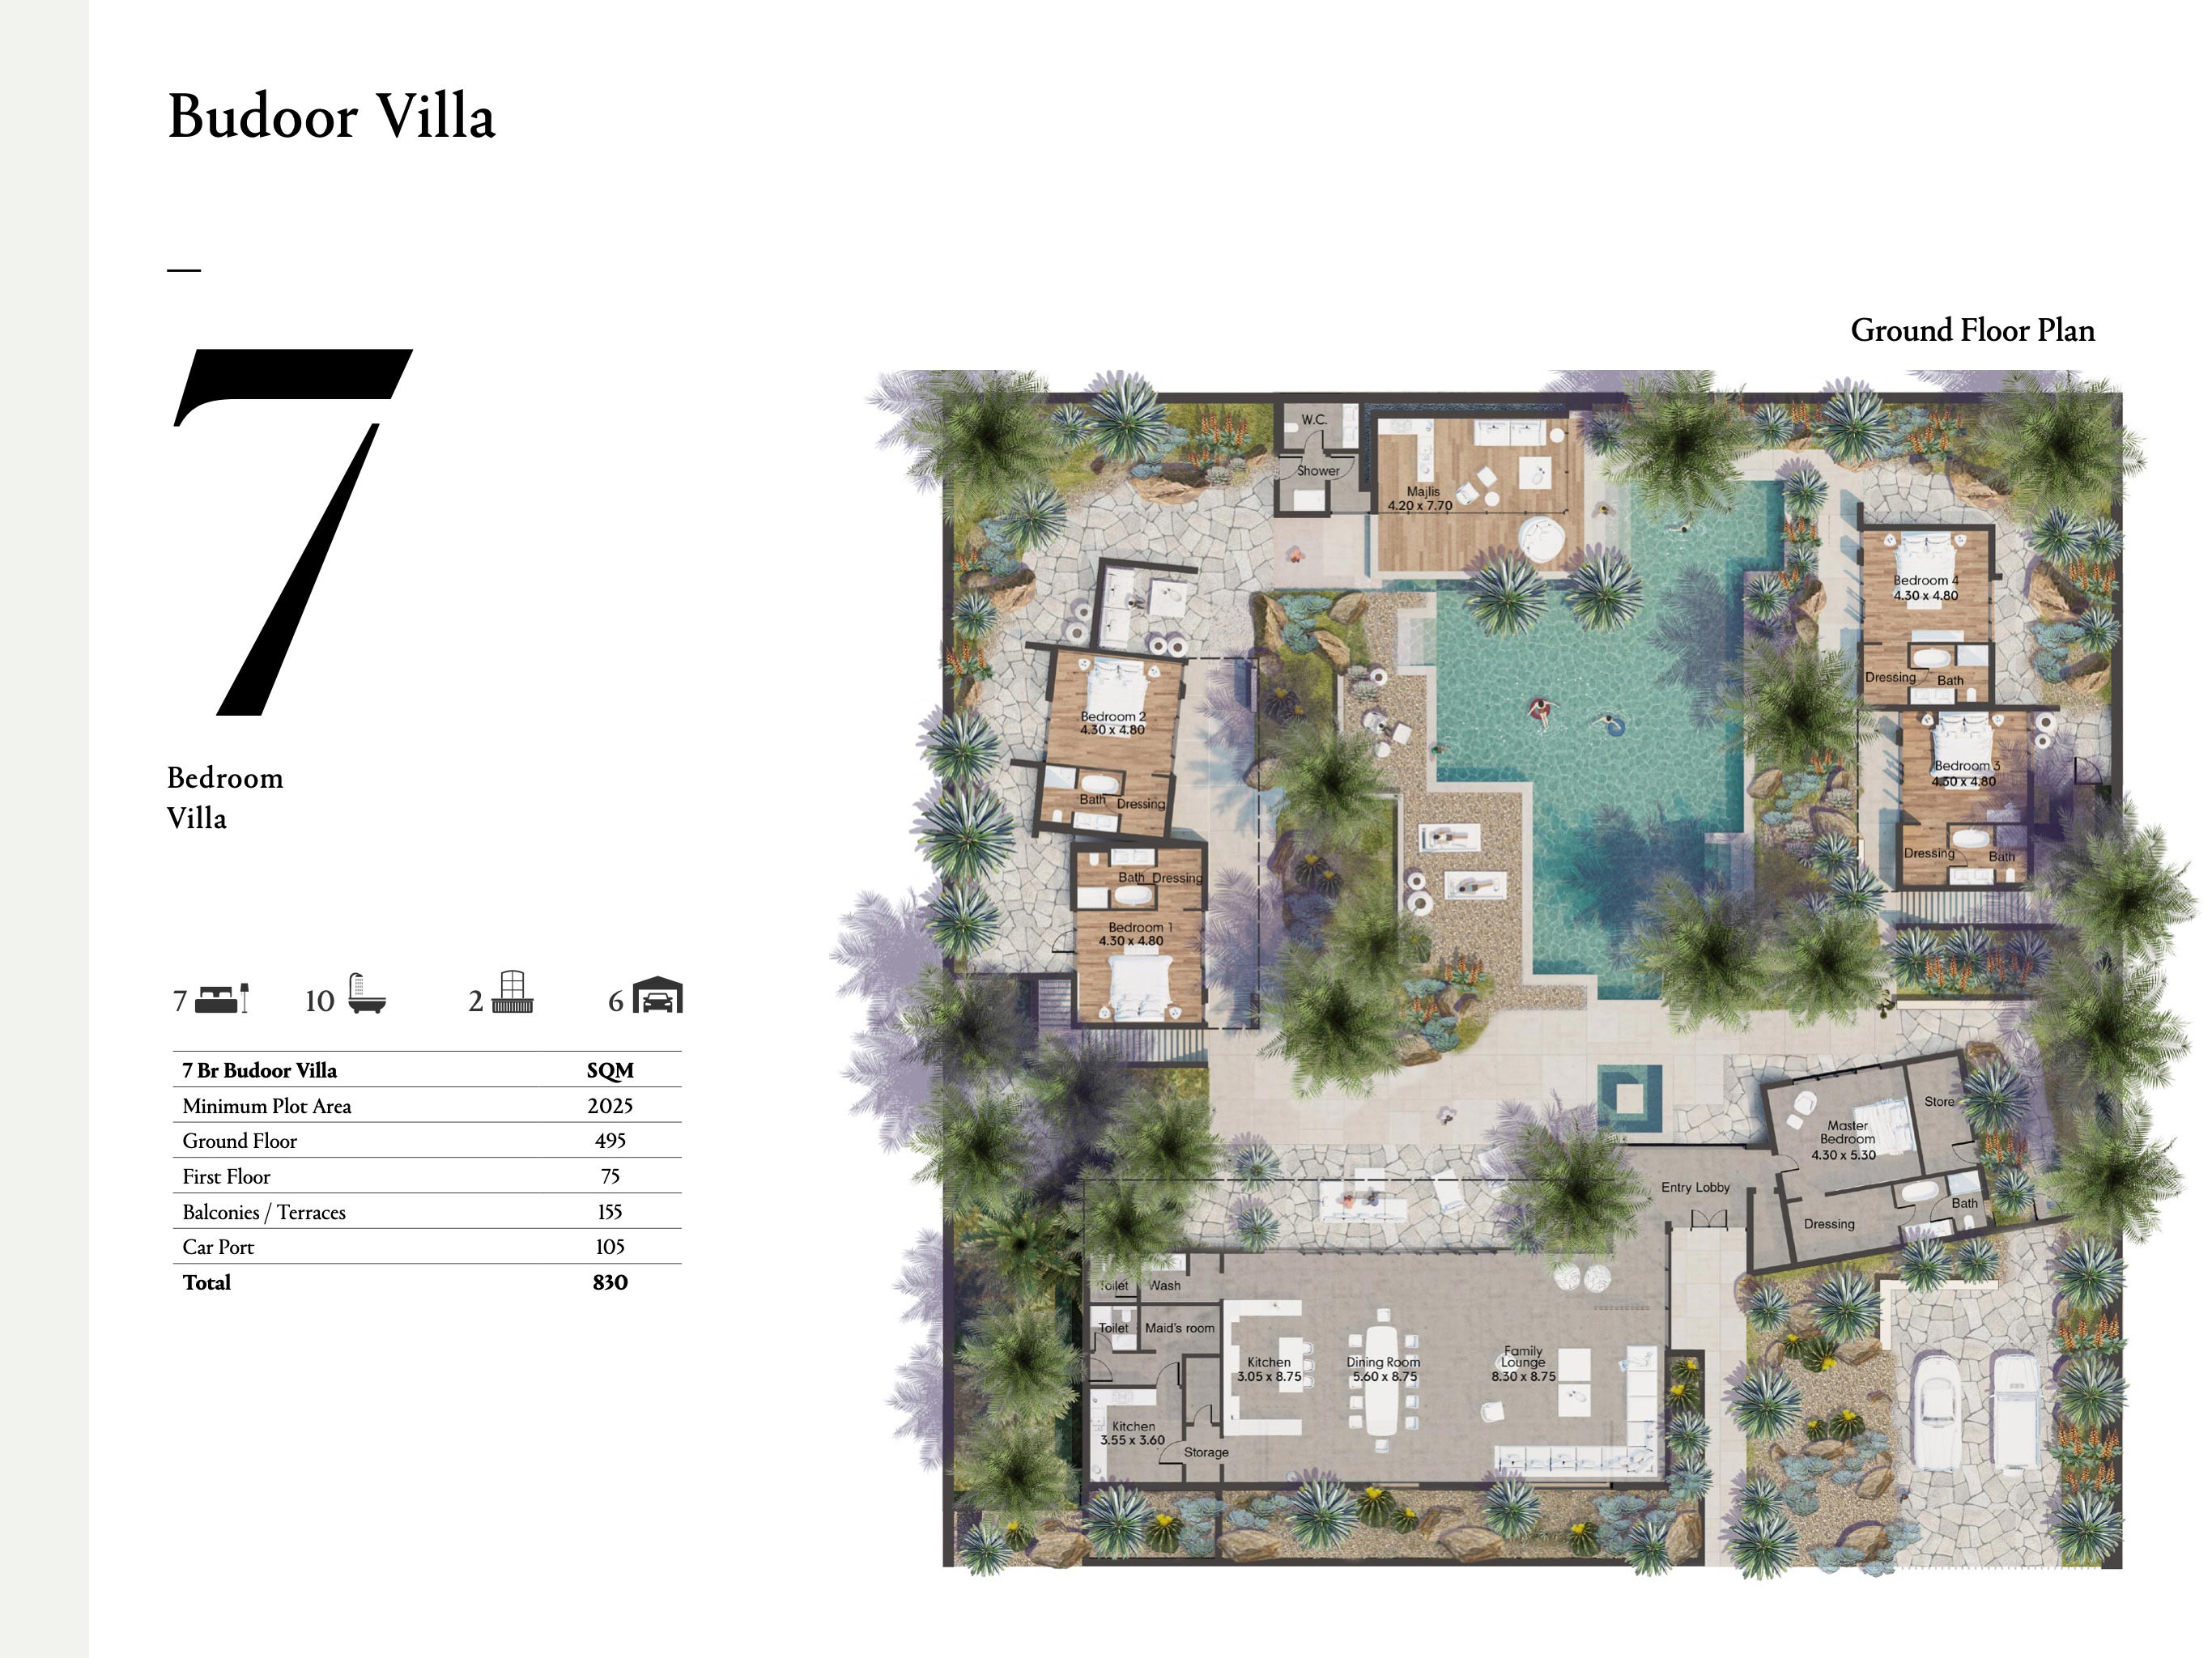 Budoor-Villa-7-Bedroom-Size-830-SQM